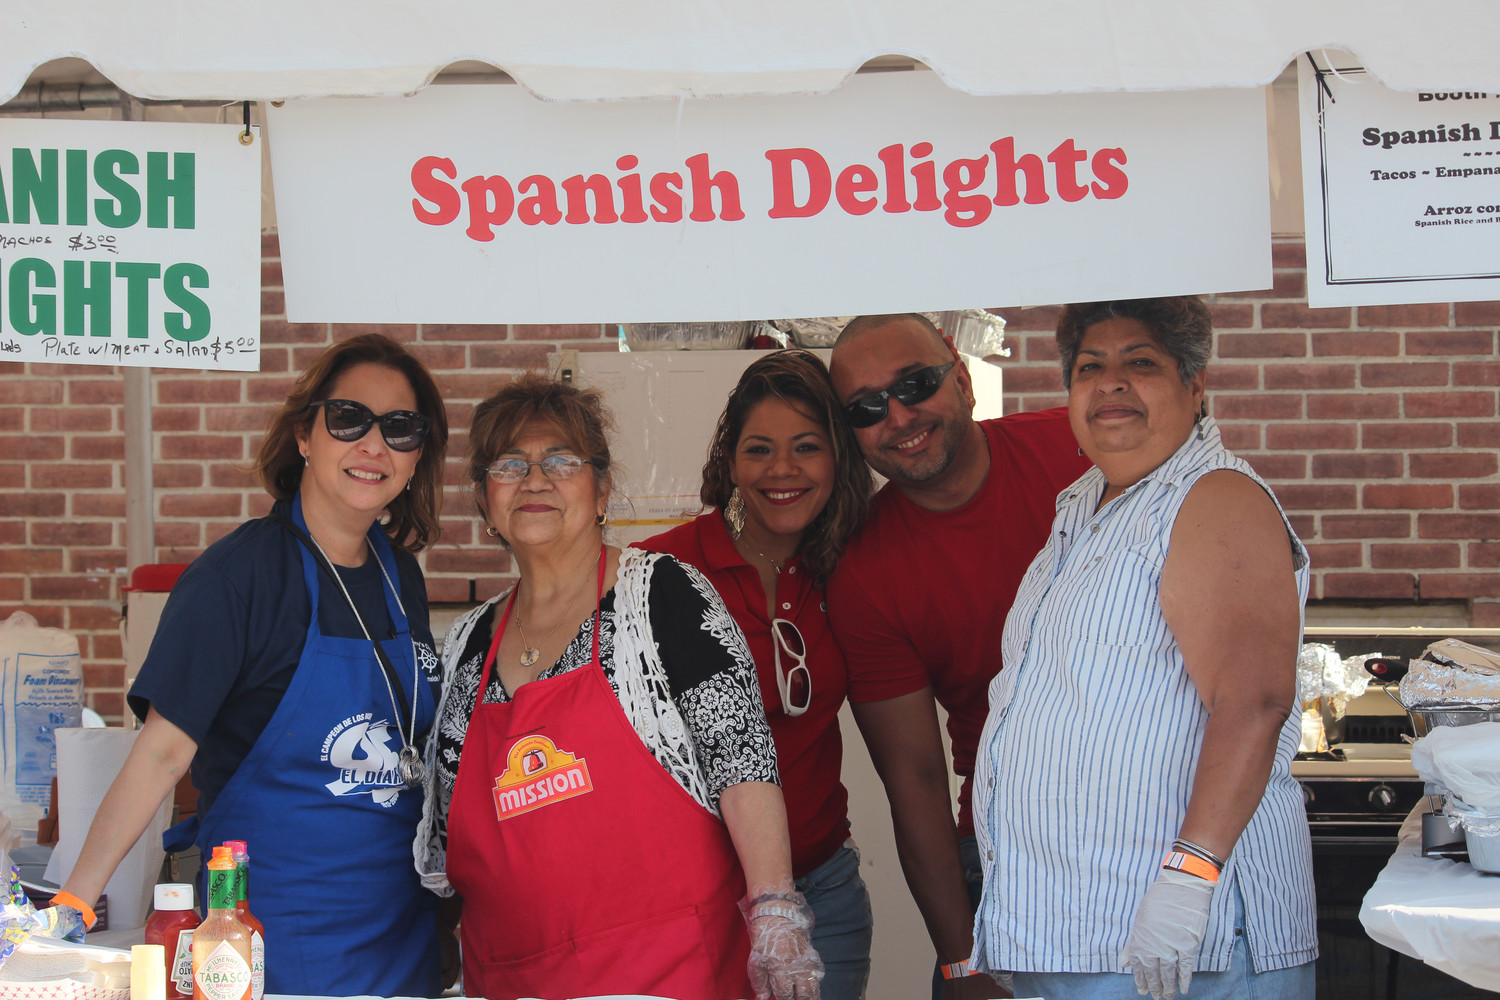 Volunteers Rosmery Madera, left, Maria Dodge, Yudalis Jimenez and Lidia Hernandez served up Spanish delights.